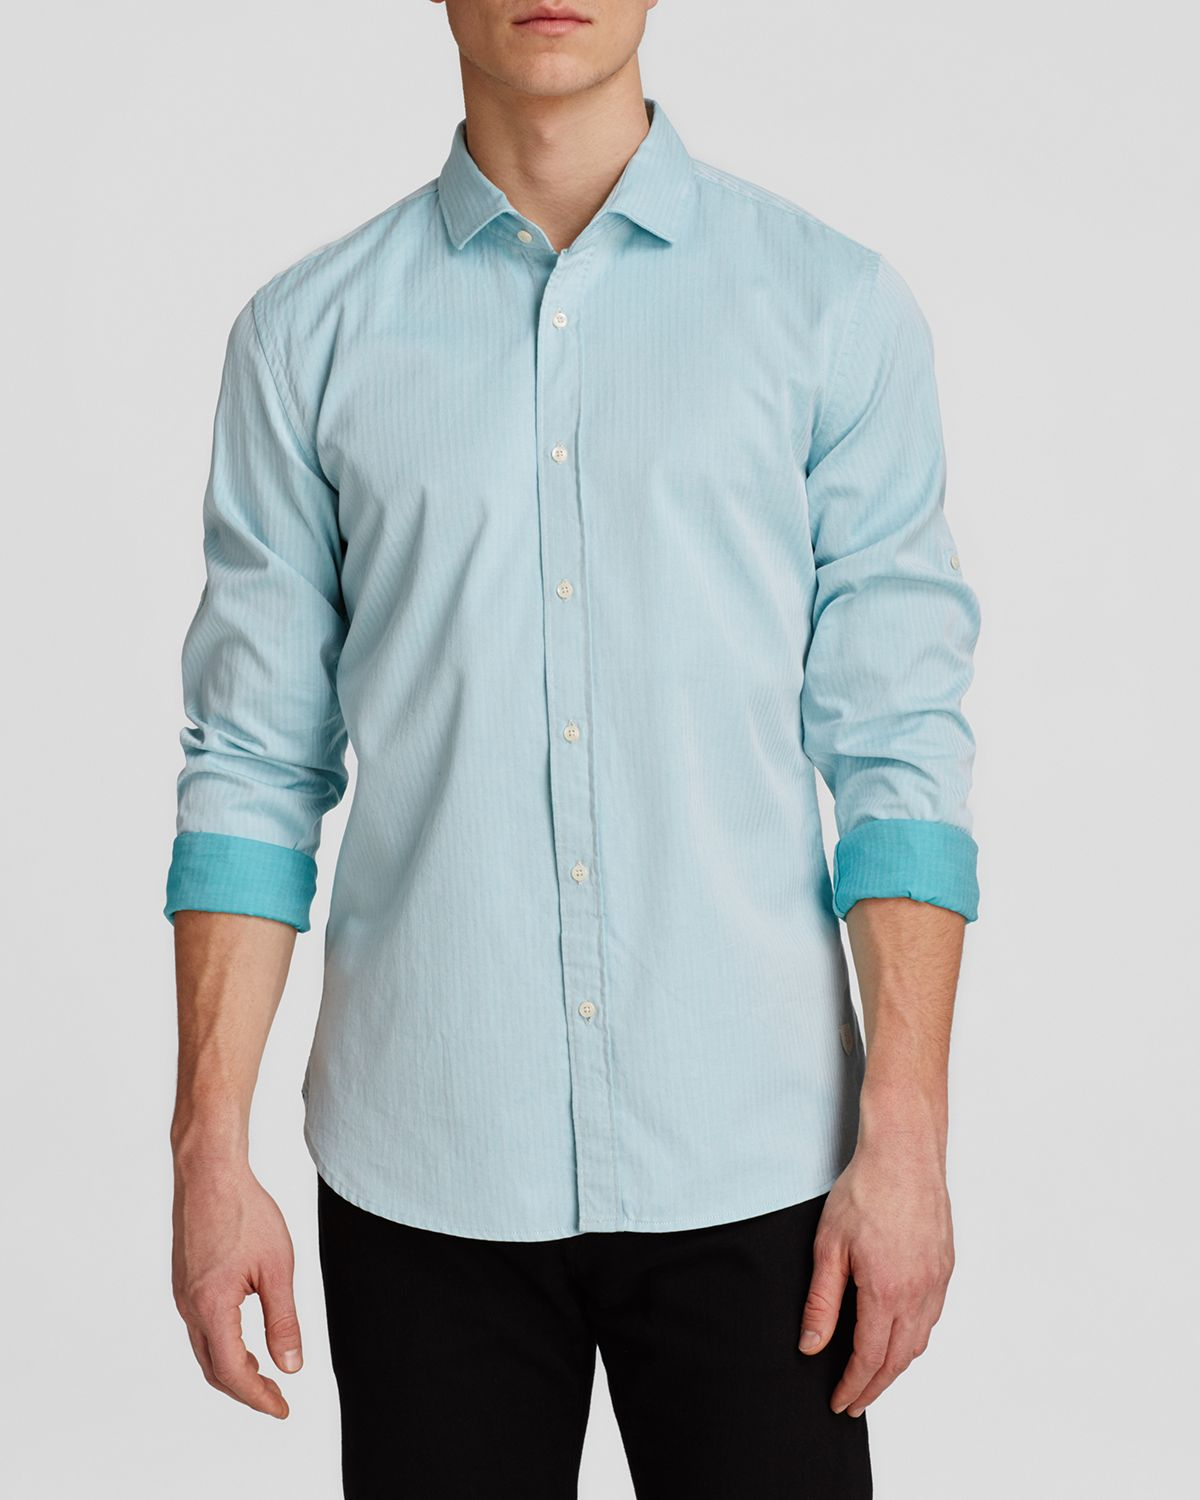 Scotch soda stripe button down shirt slim fit in green for Athletic fit button down shirts